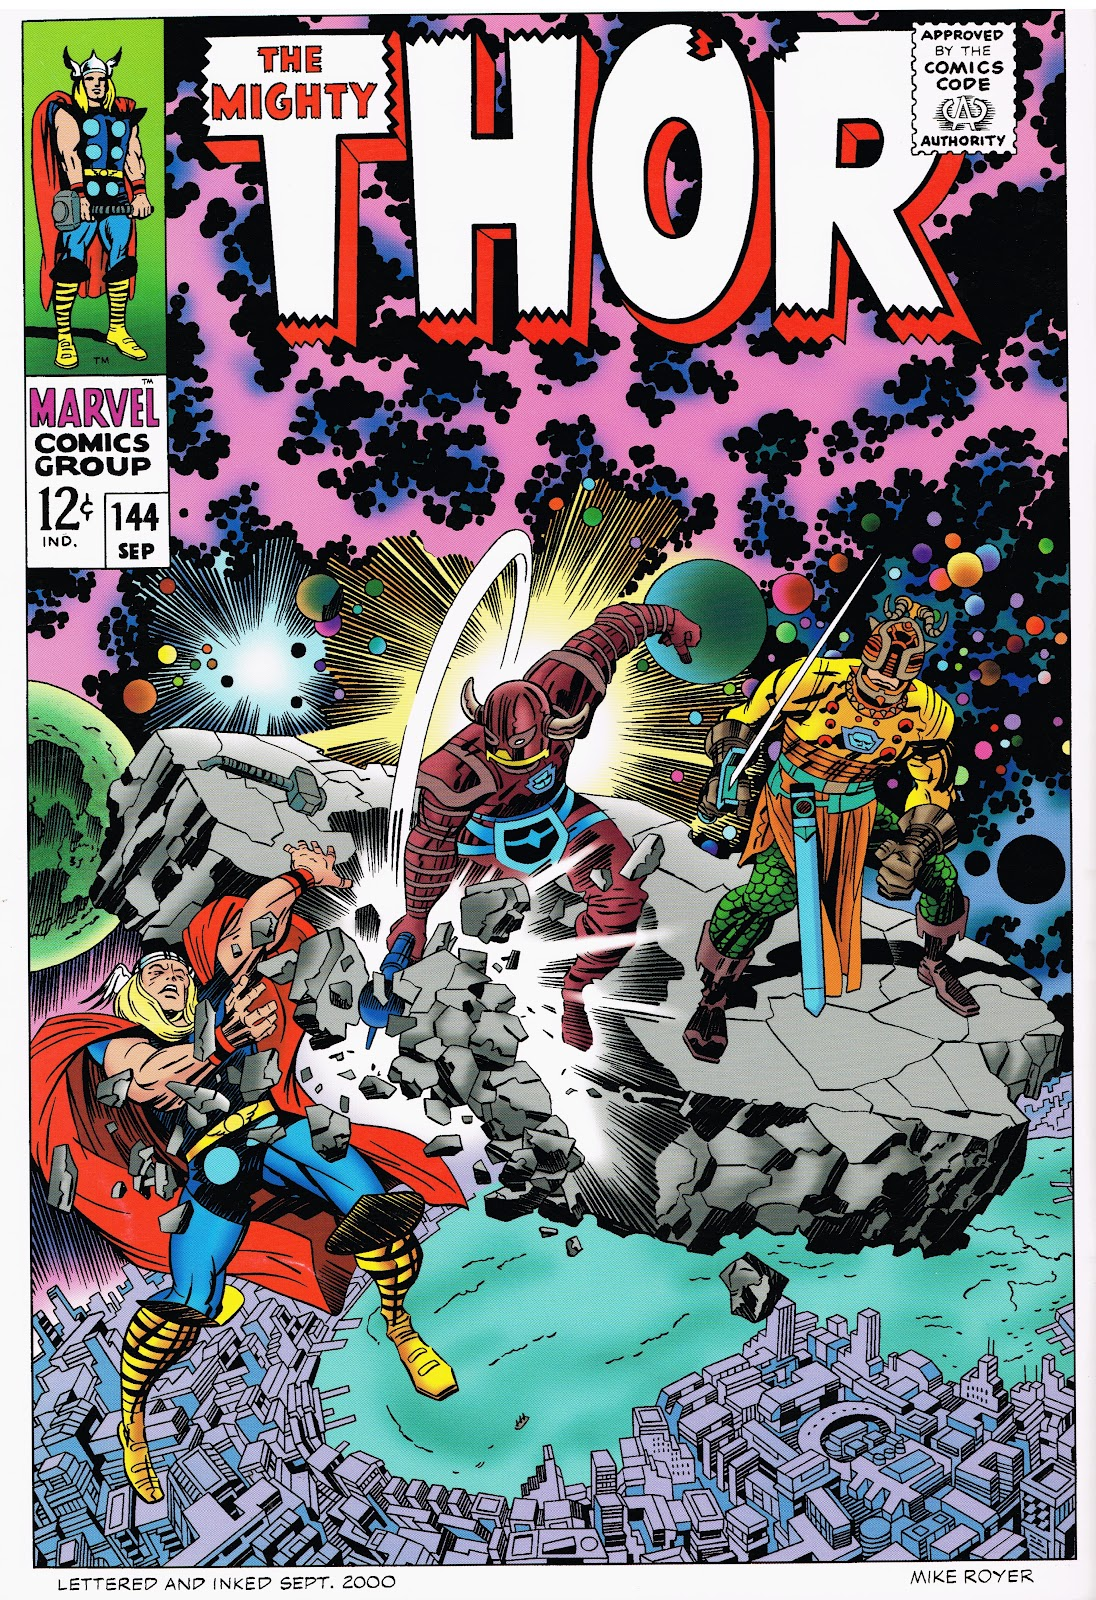 Posted by Cap n s Comics at 4 45 PMJack Kirby Cover